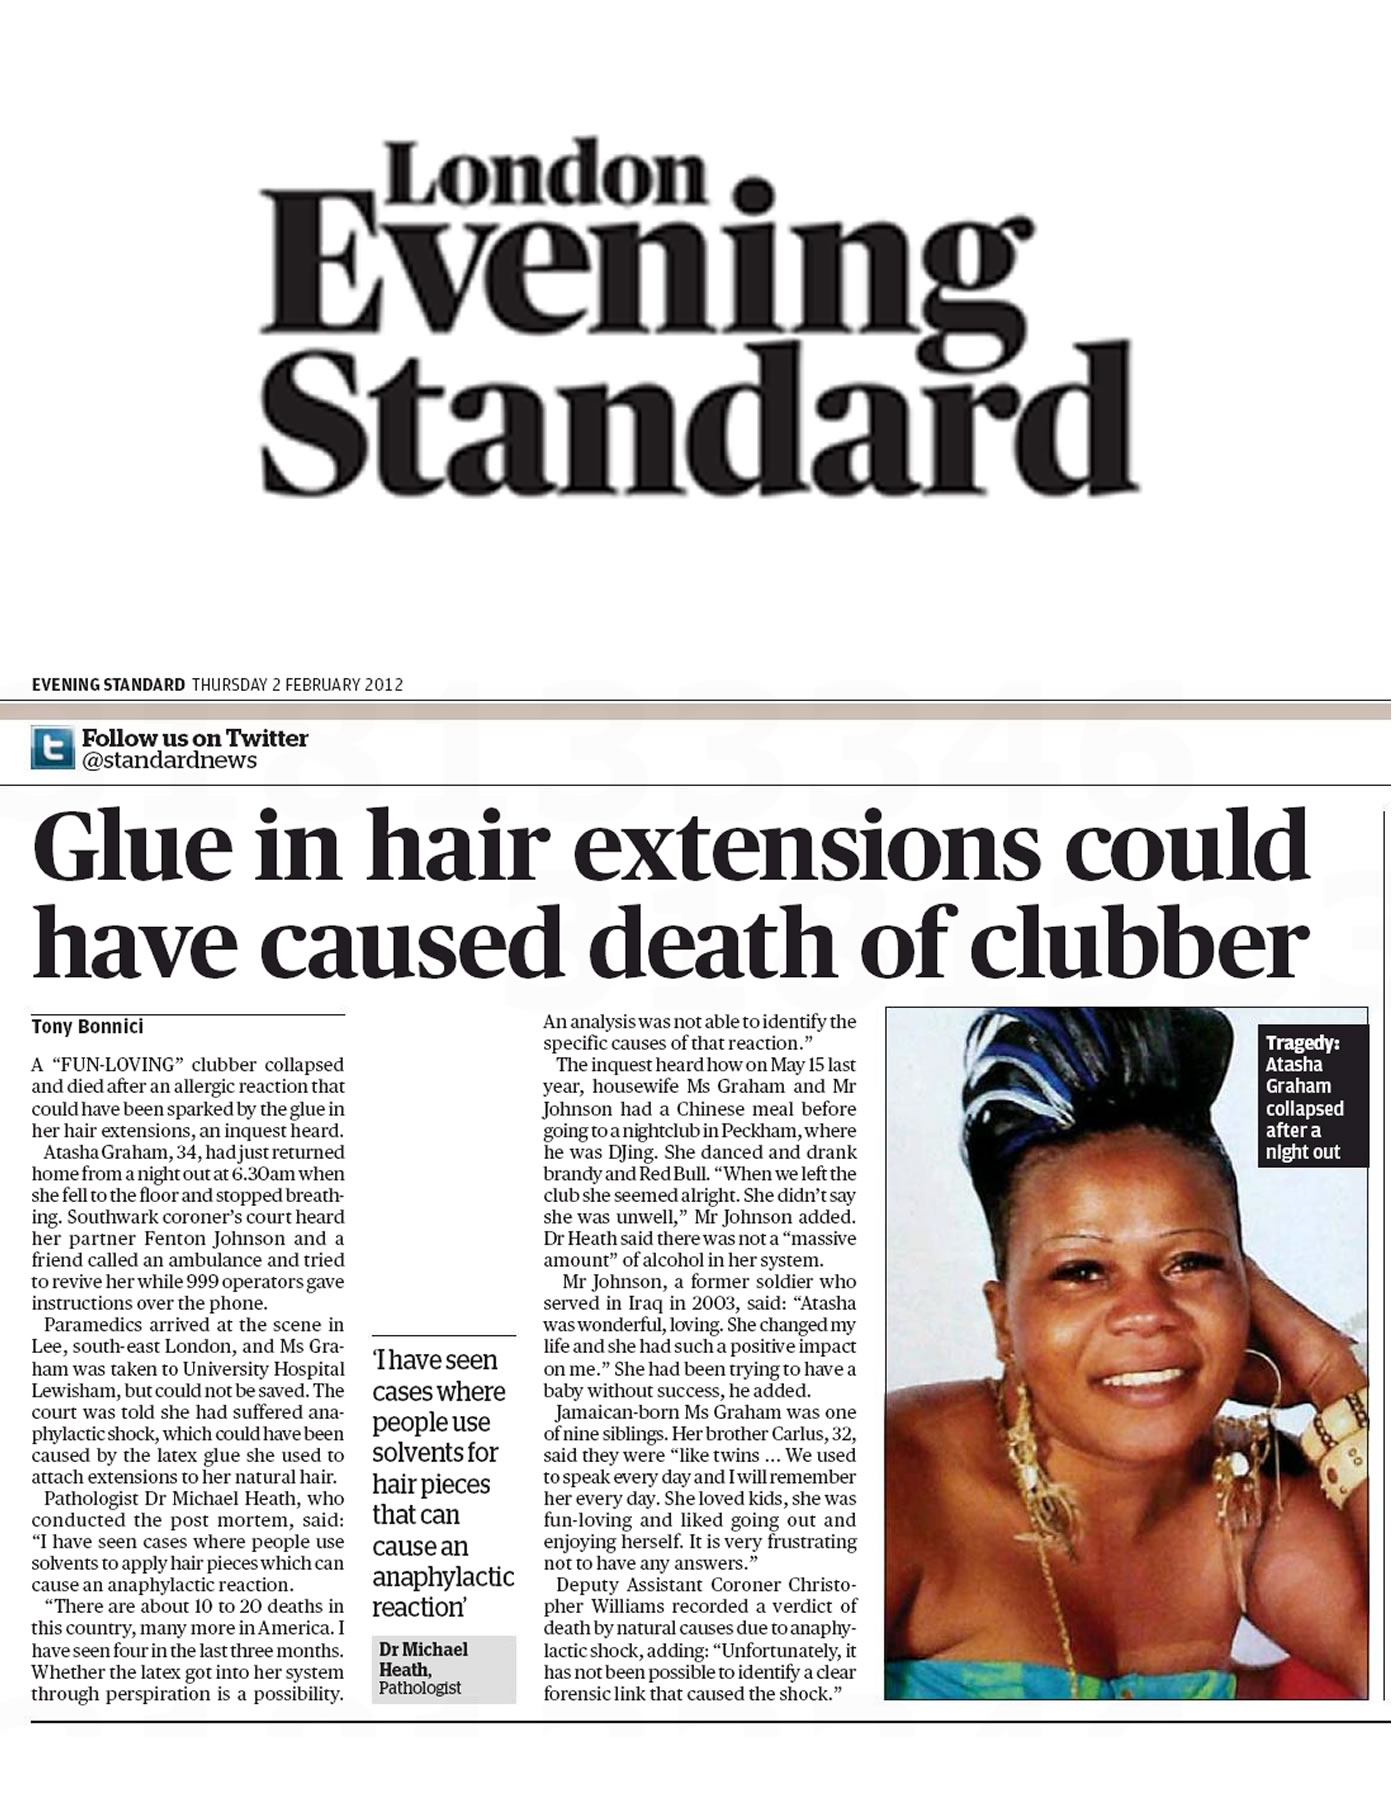 'Glue in hair extensions could have caused death of clubber' - Evening Standard, London